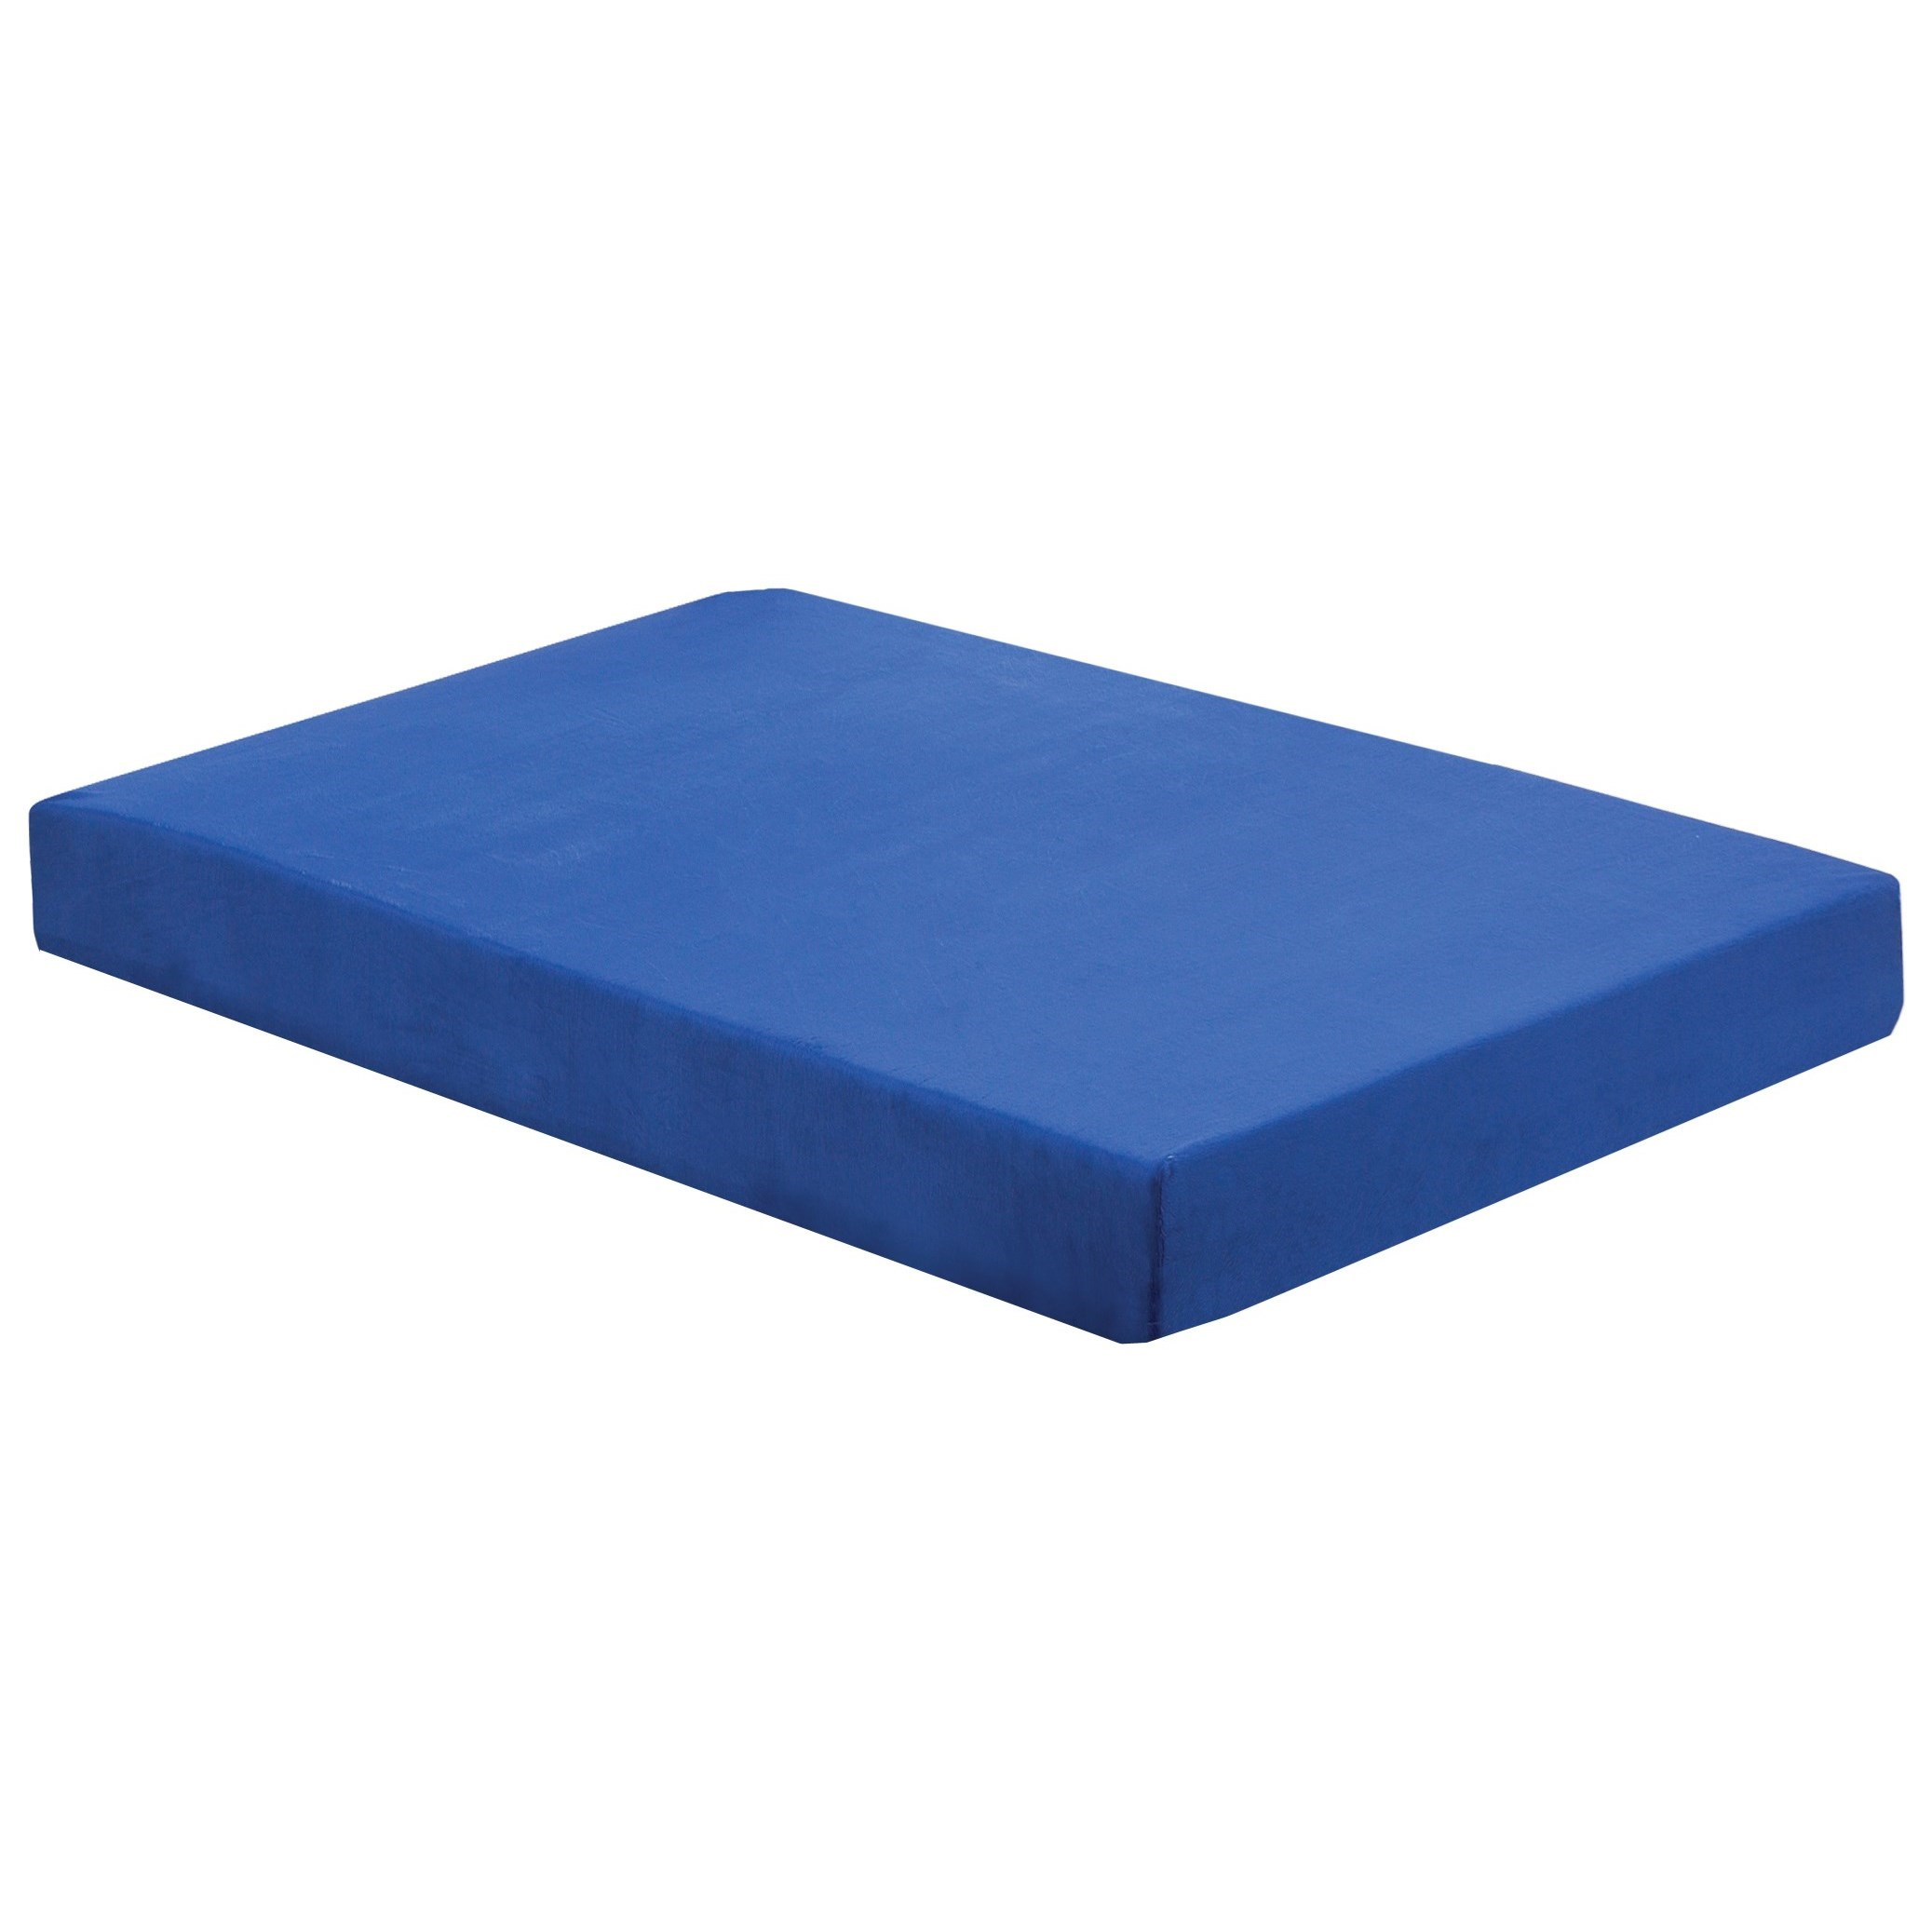 "Full 7"" Blueberry Memory Foam Mattress"